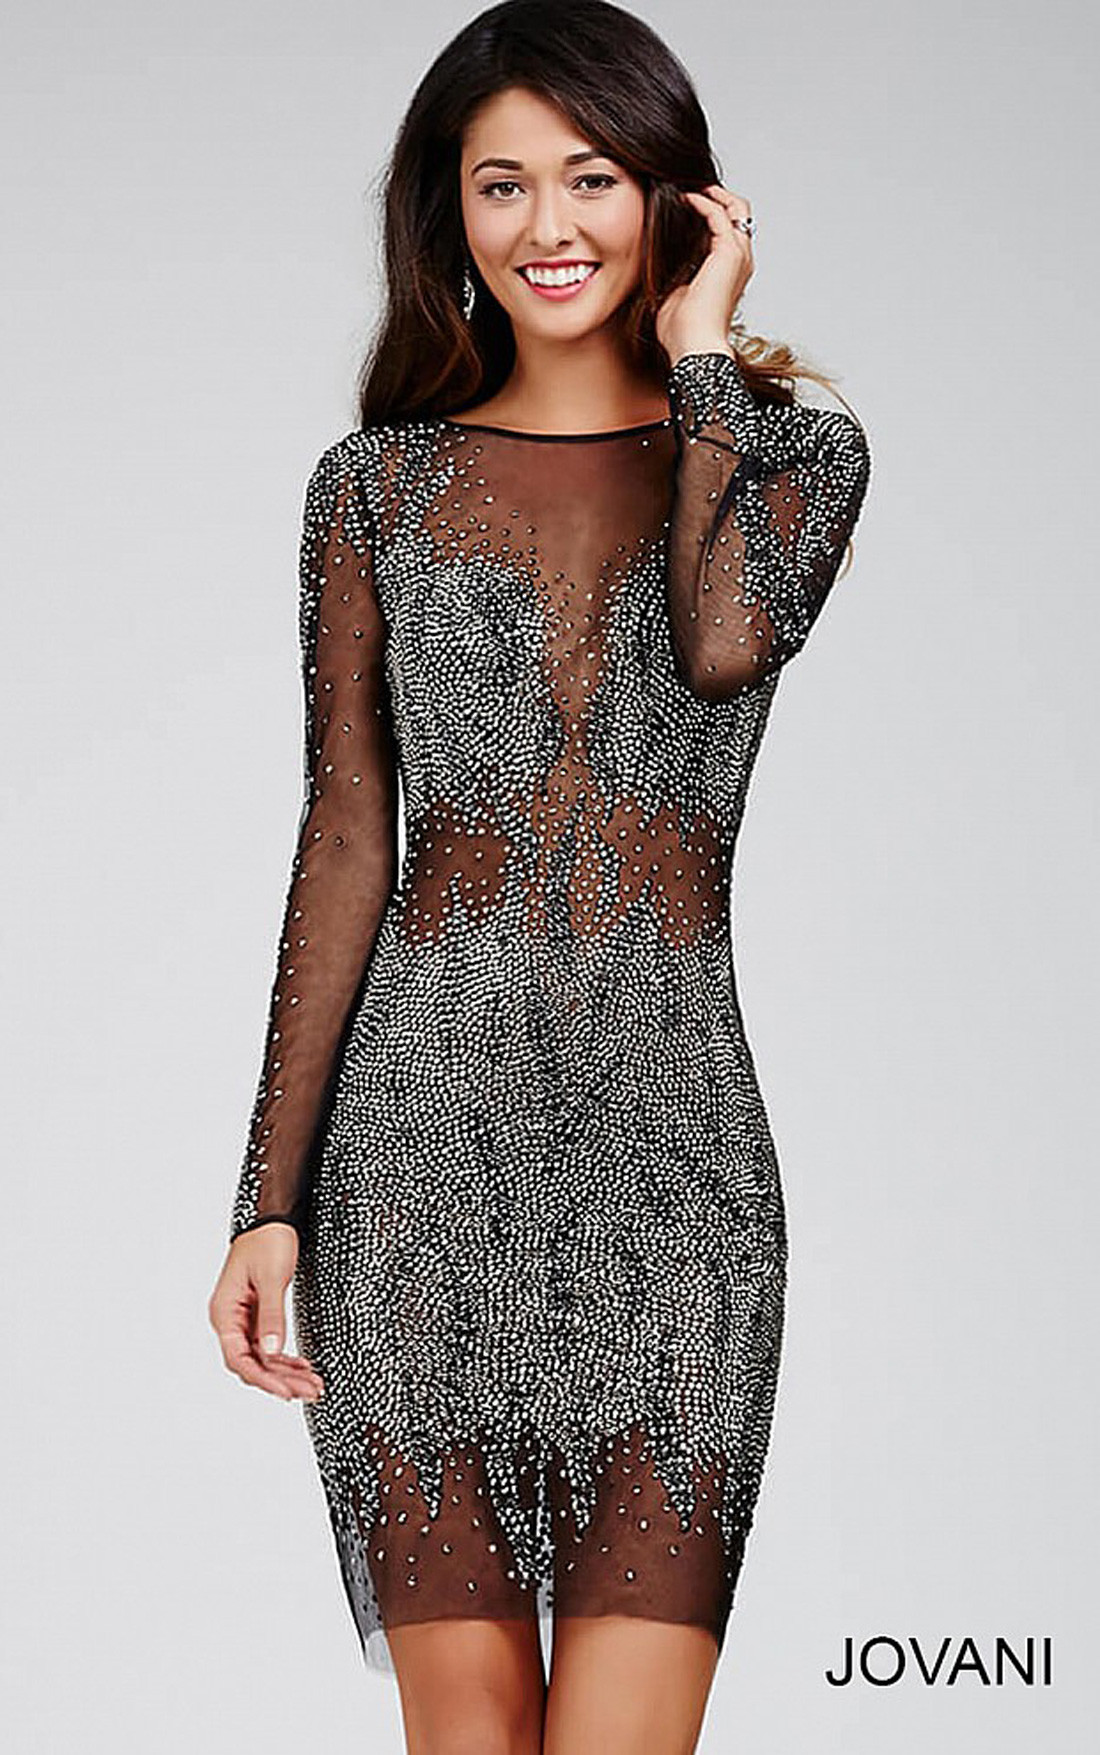 Jovani Dresses | Womens Black Sheer Dress with Crystal ...